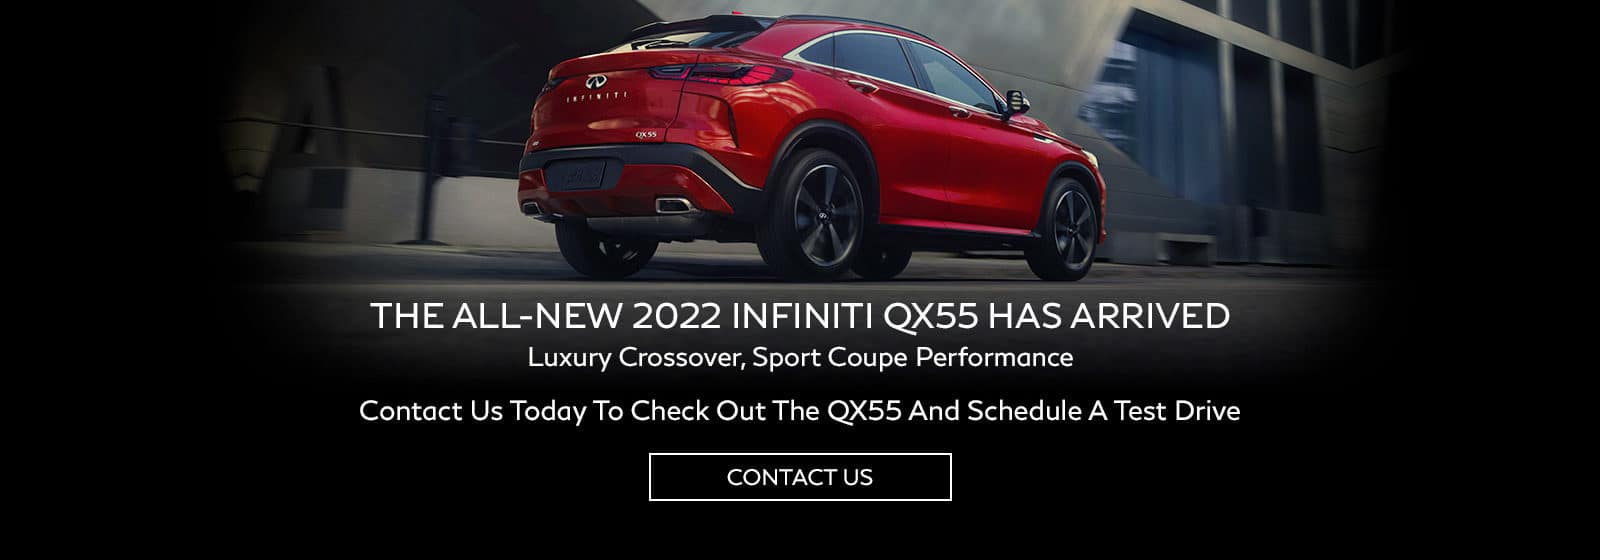 QX55 Has Arrived